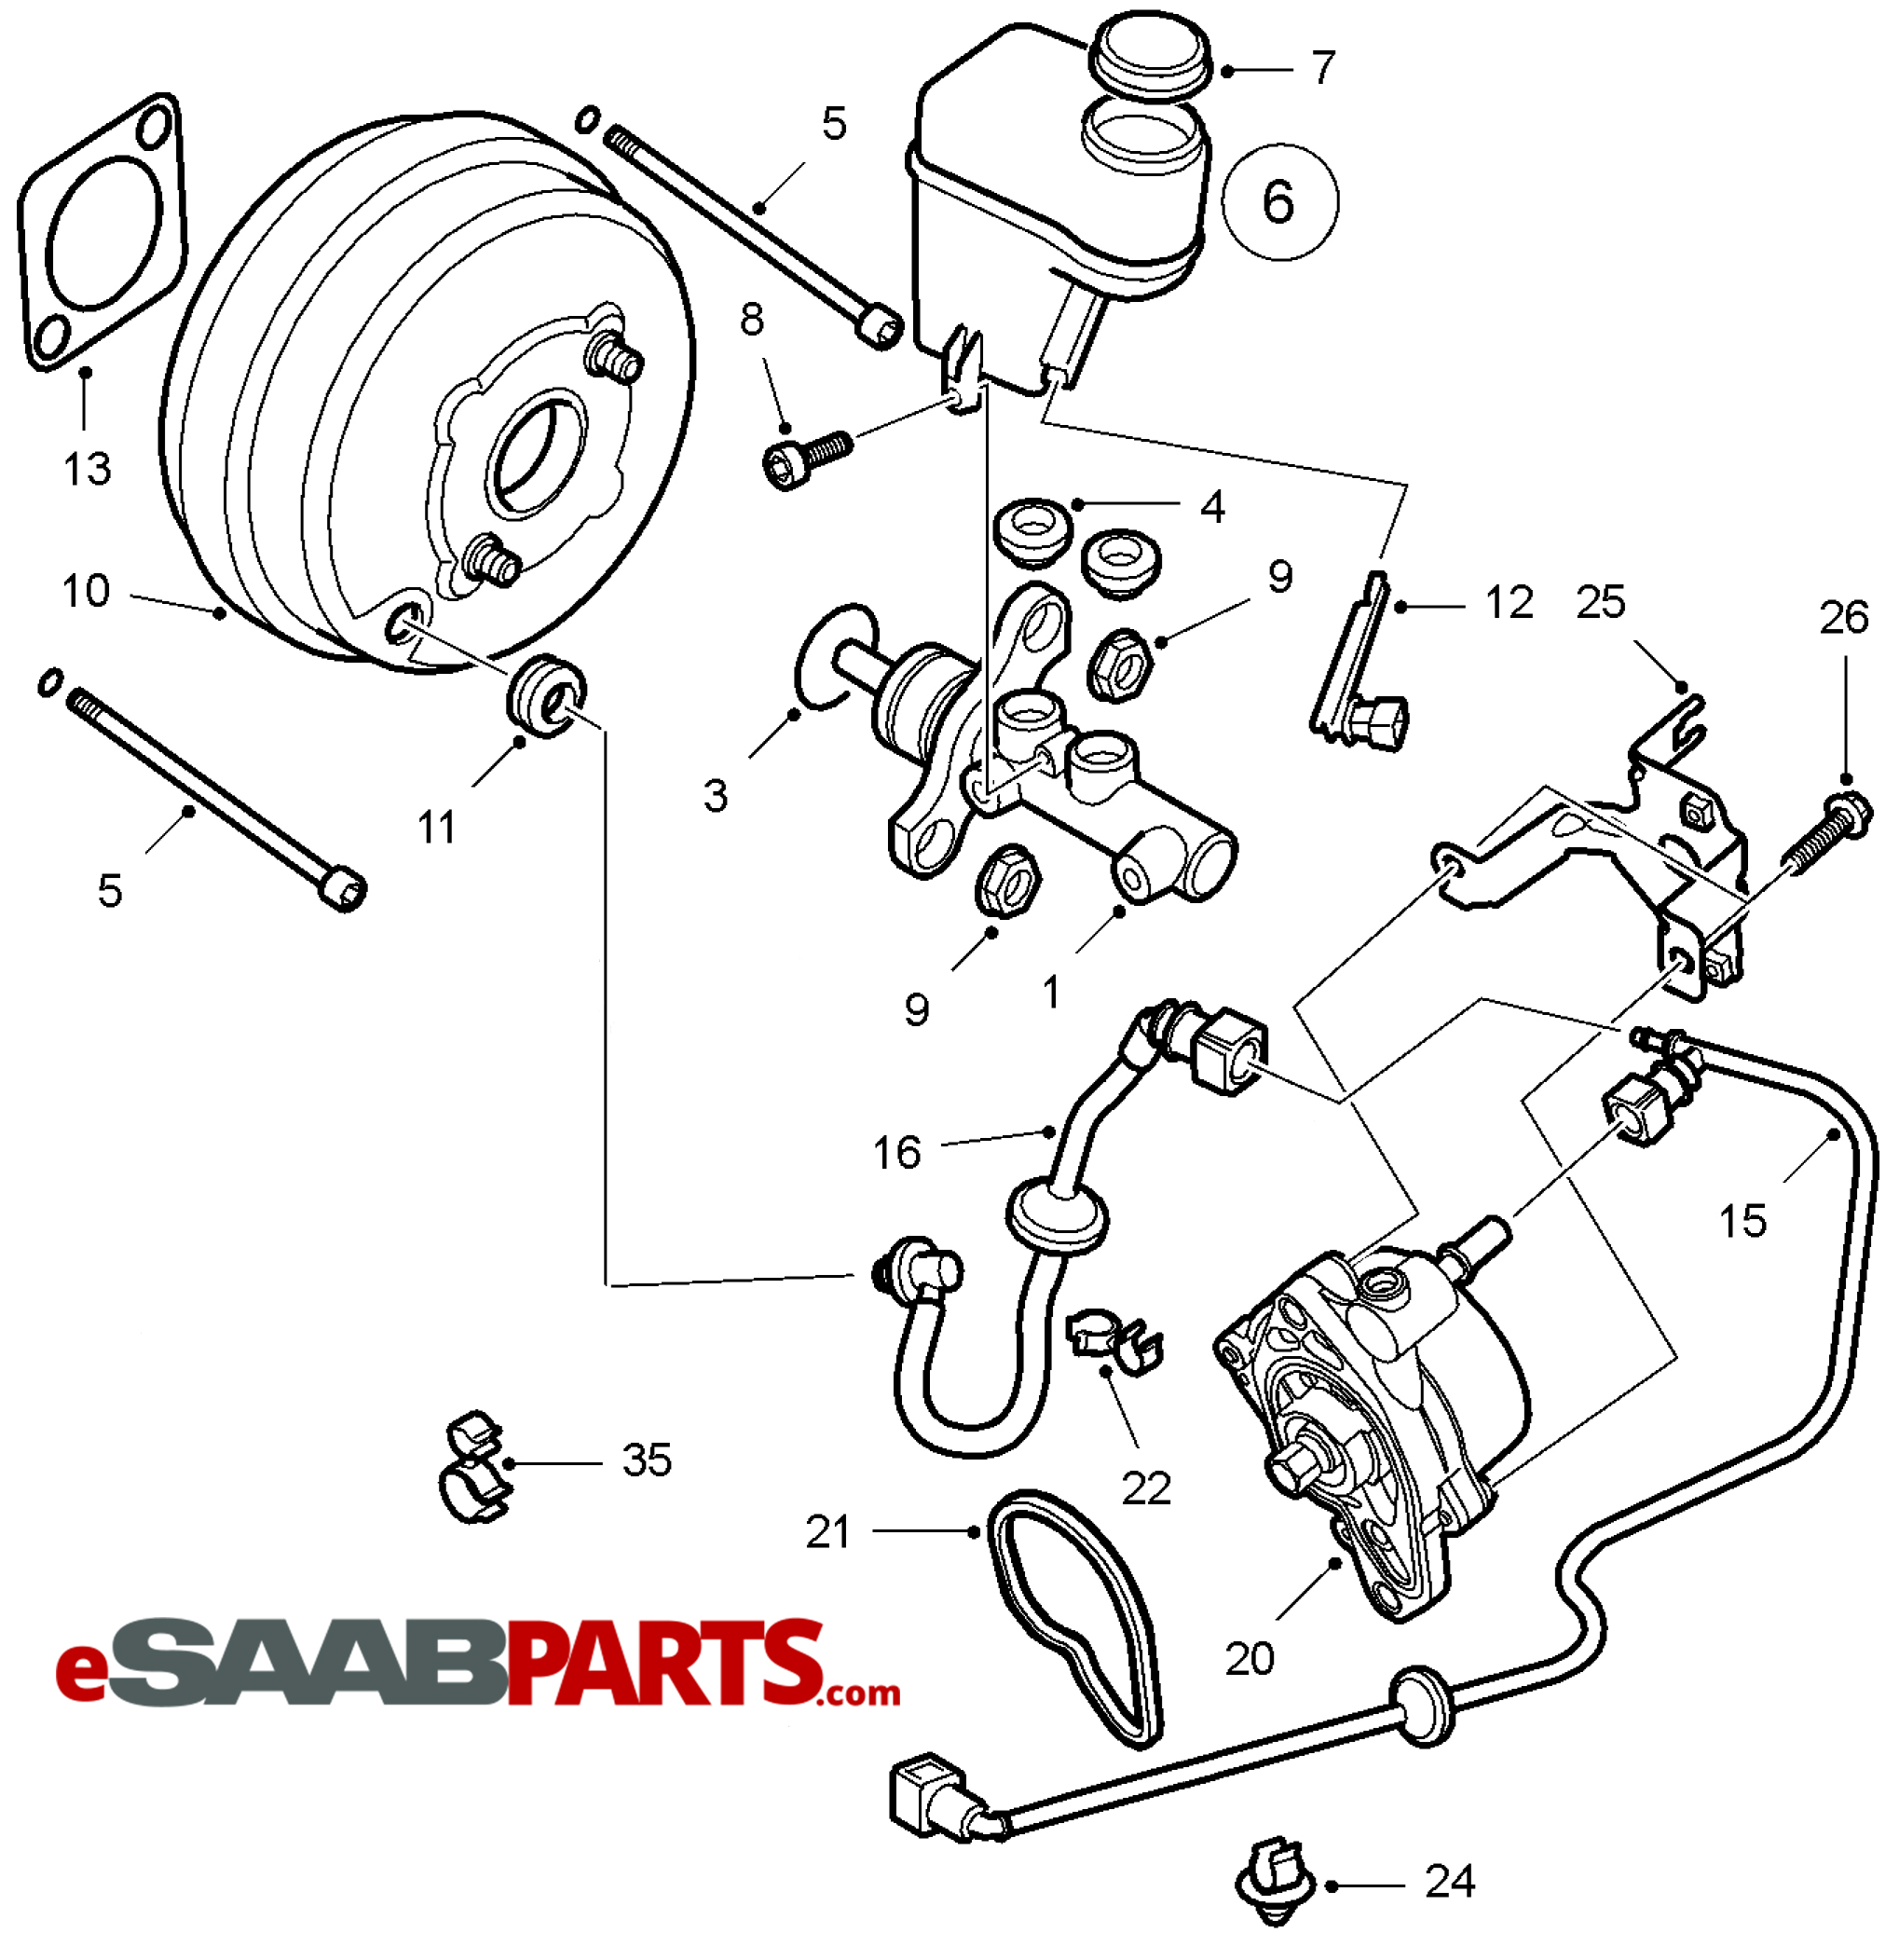 saab 9 5 engine diagram briggs and stratton lawn mower parts 3 partment 2 0t specs